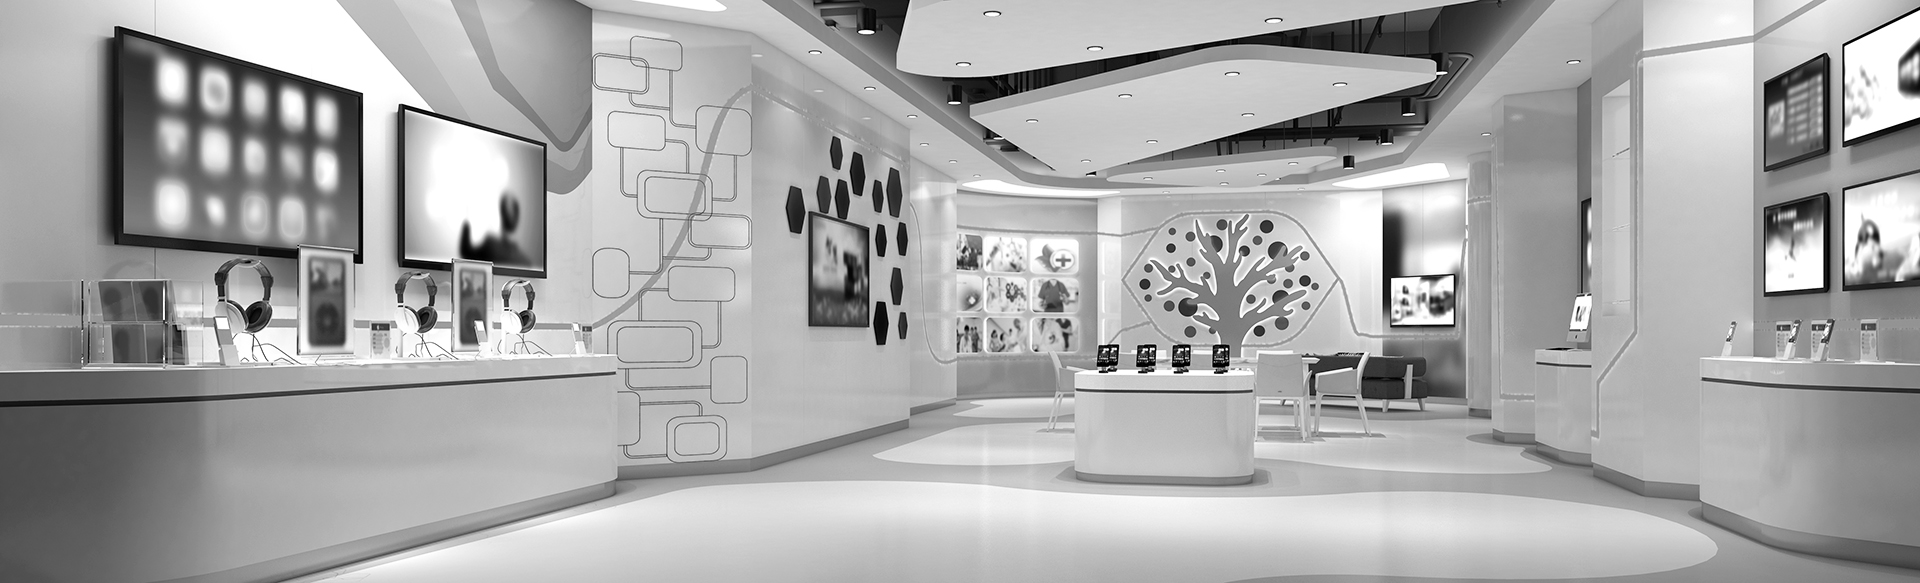 black and white image of modern technology retail store AMI Strategies offers AI-powered software